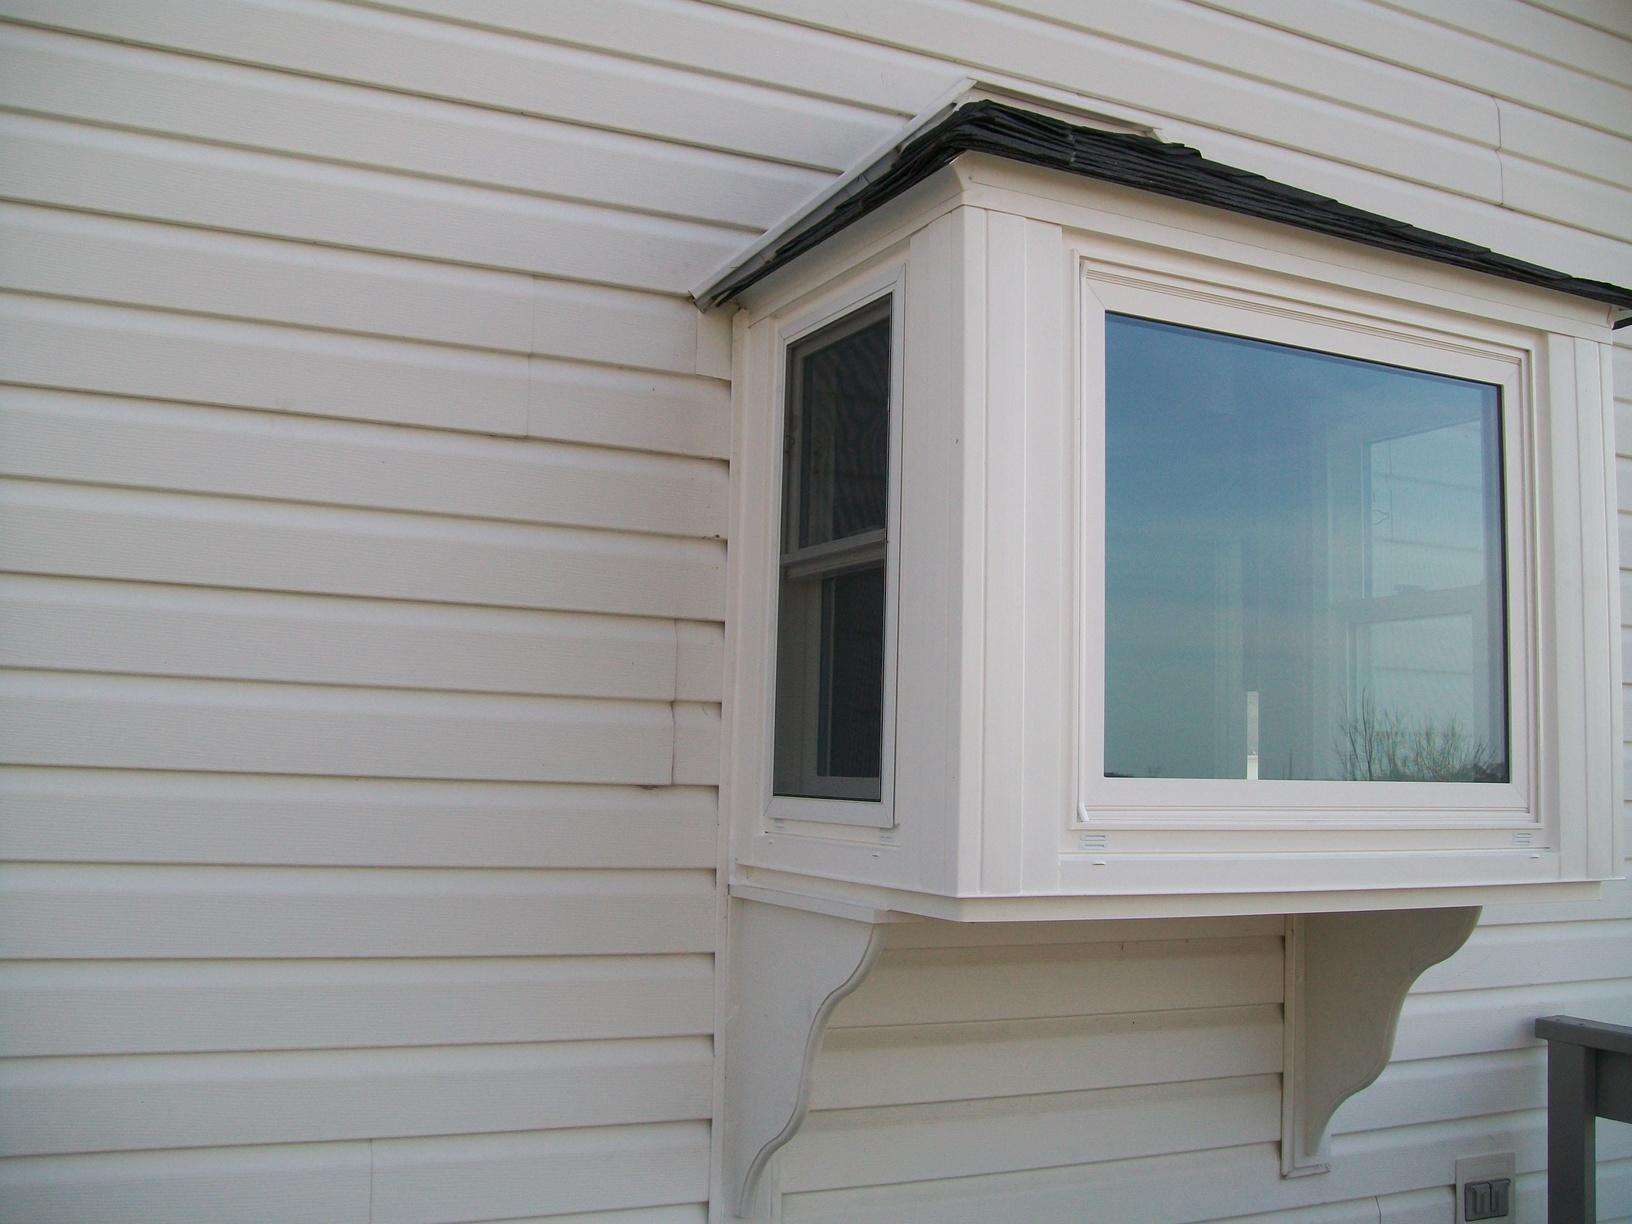 Replacement Windows Box Bay Window Installed In Claysville Pa Exterior View Of Box Bay Window Installation In Claysville Pa